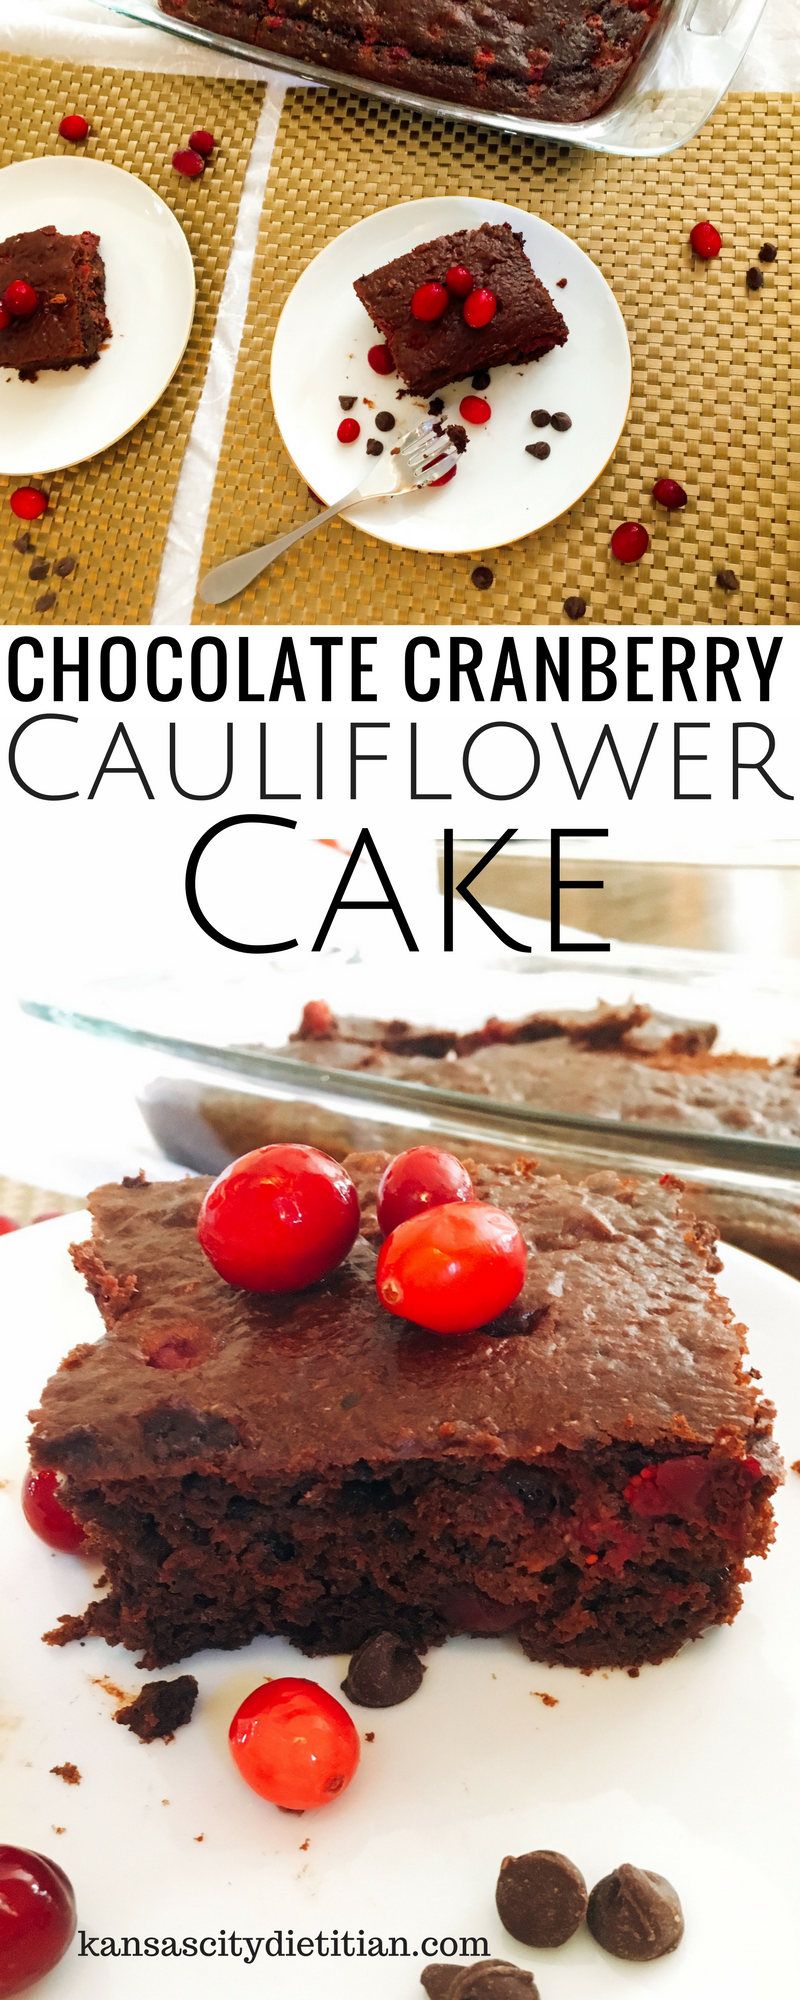 Chocolate Cranberry Cauliflower Cake